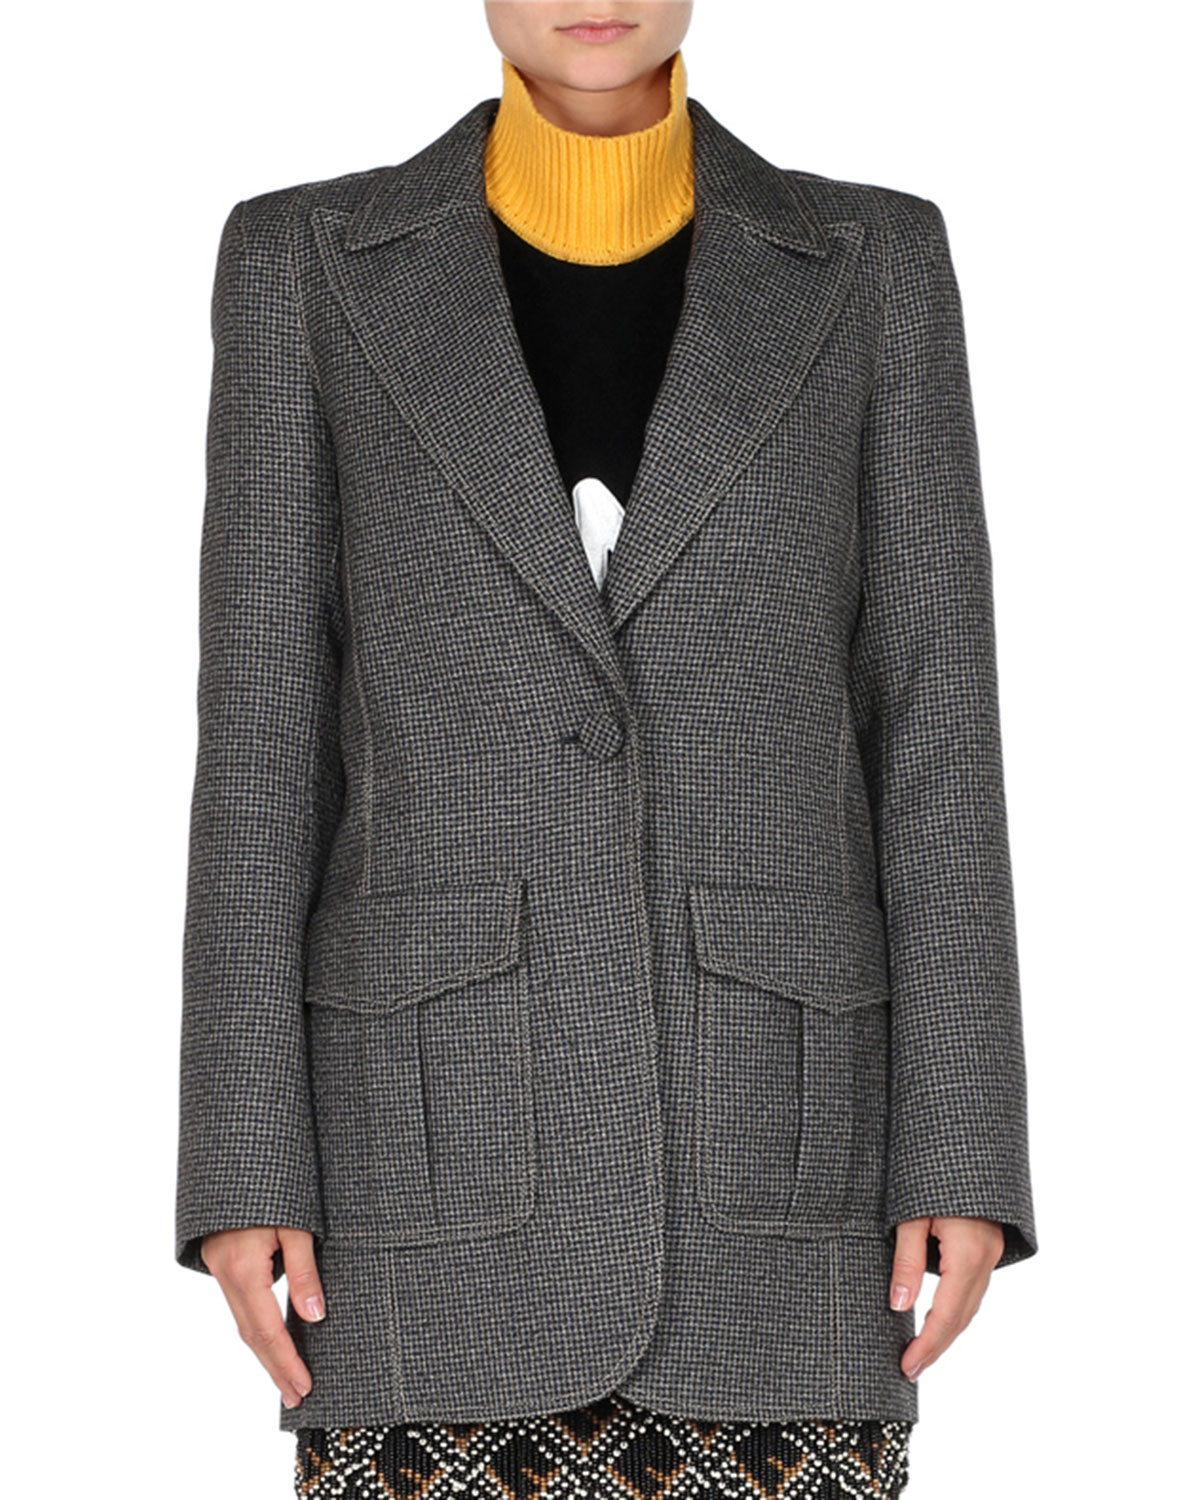 FENDI PEAK-LAPEL ONE-BUTTON CHECK OVERSIZED JACKET